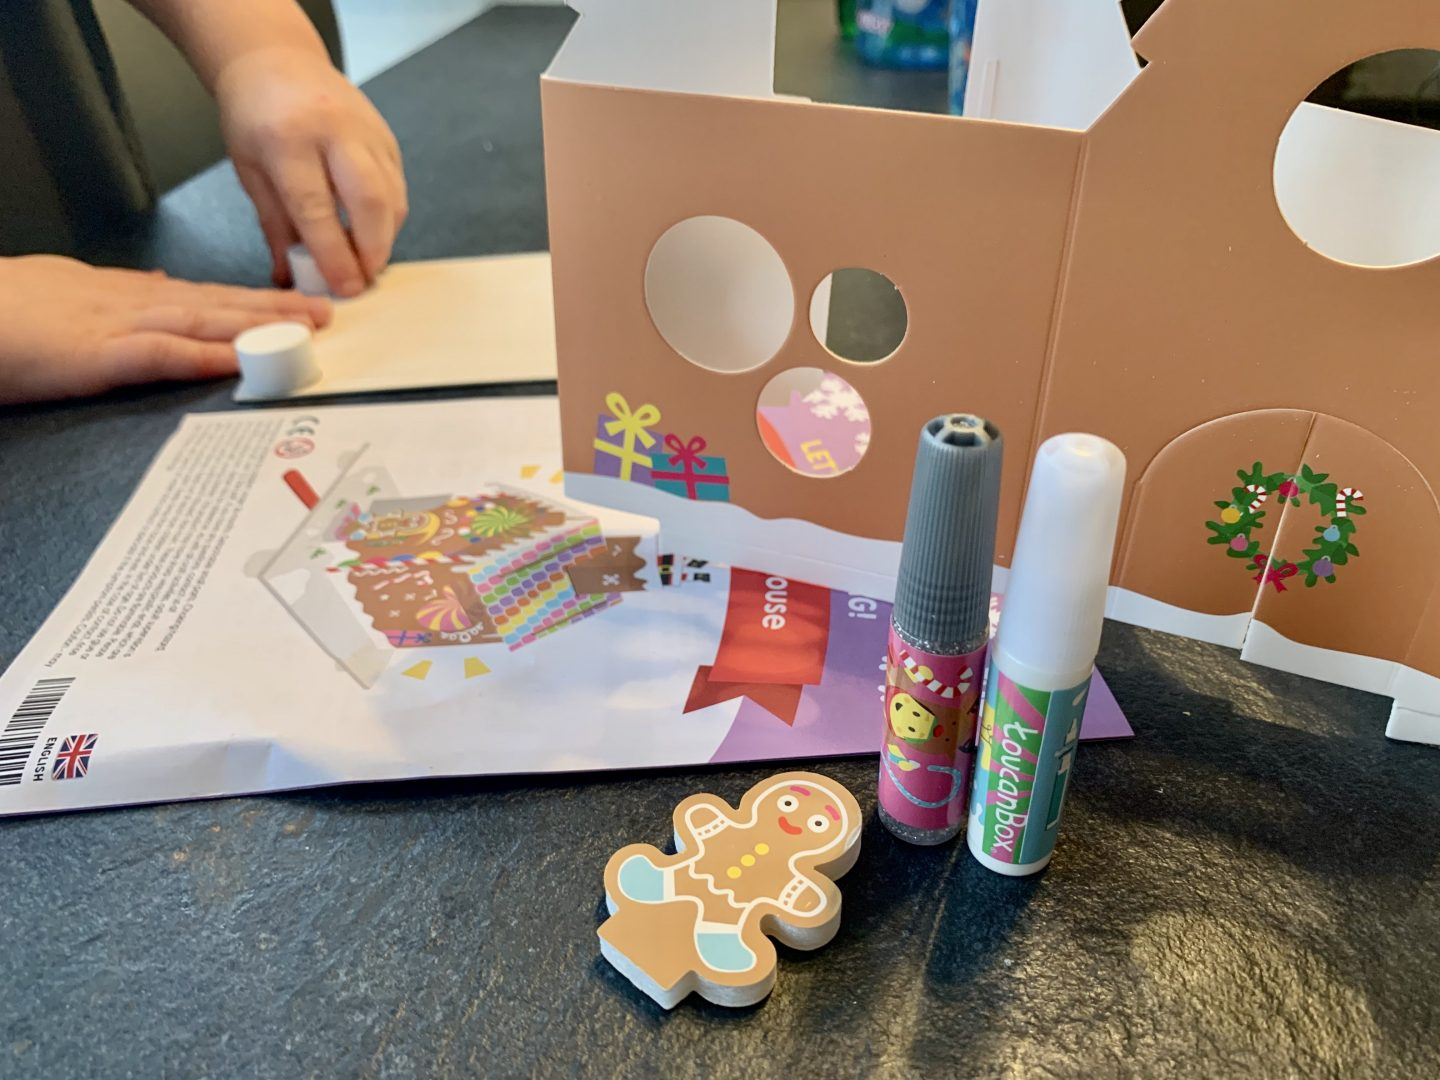 Build your own gingerbread house arts and crafts toucanBox review